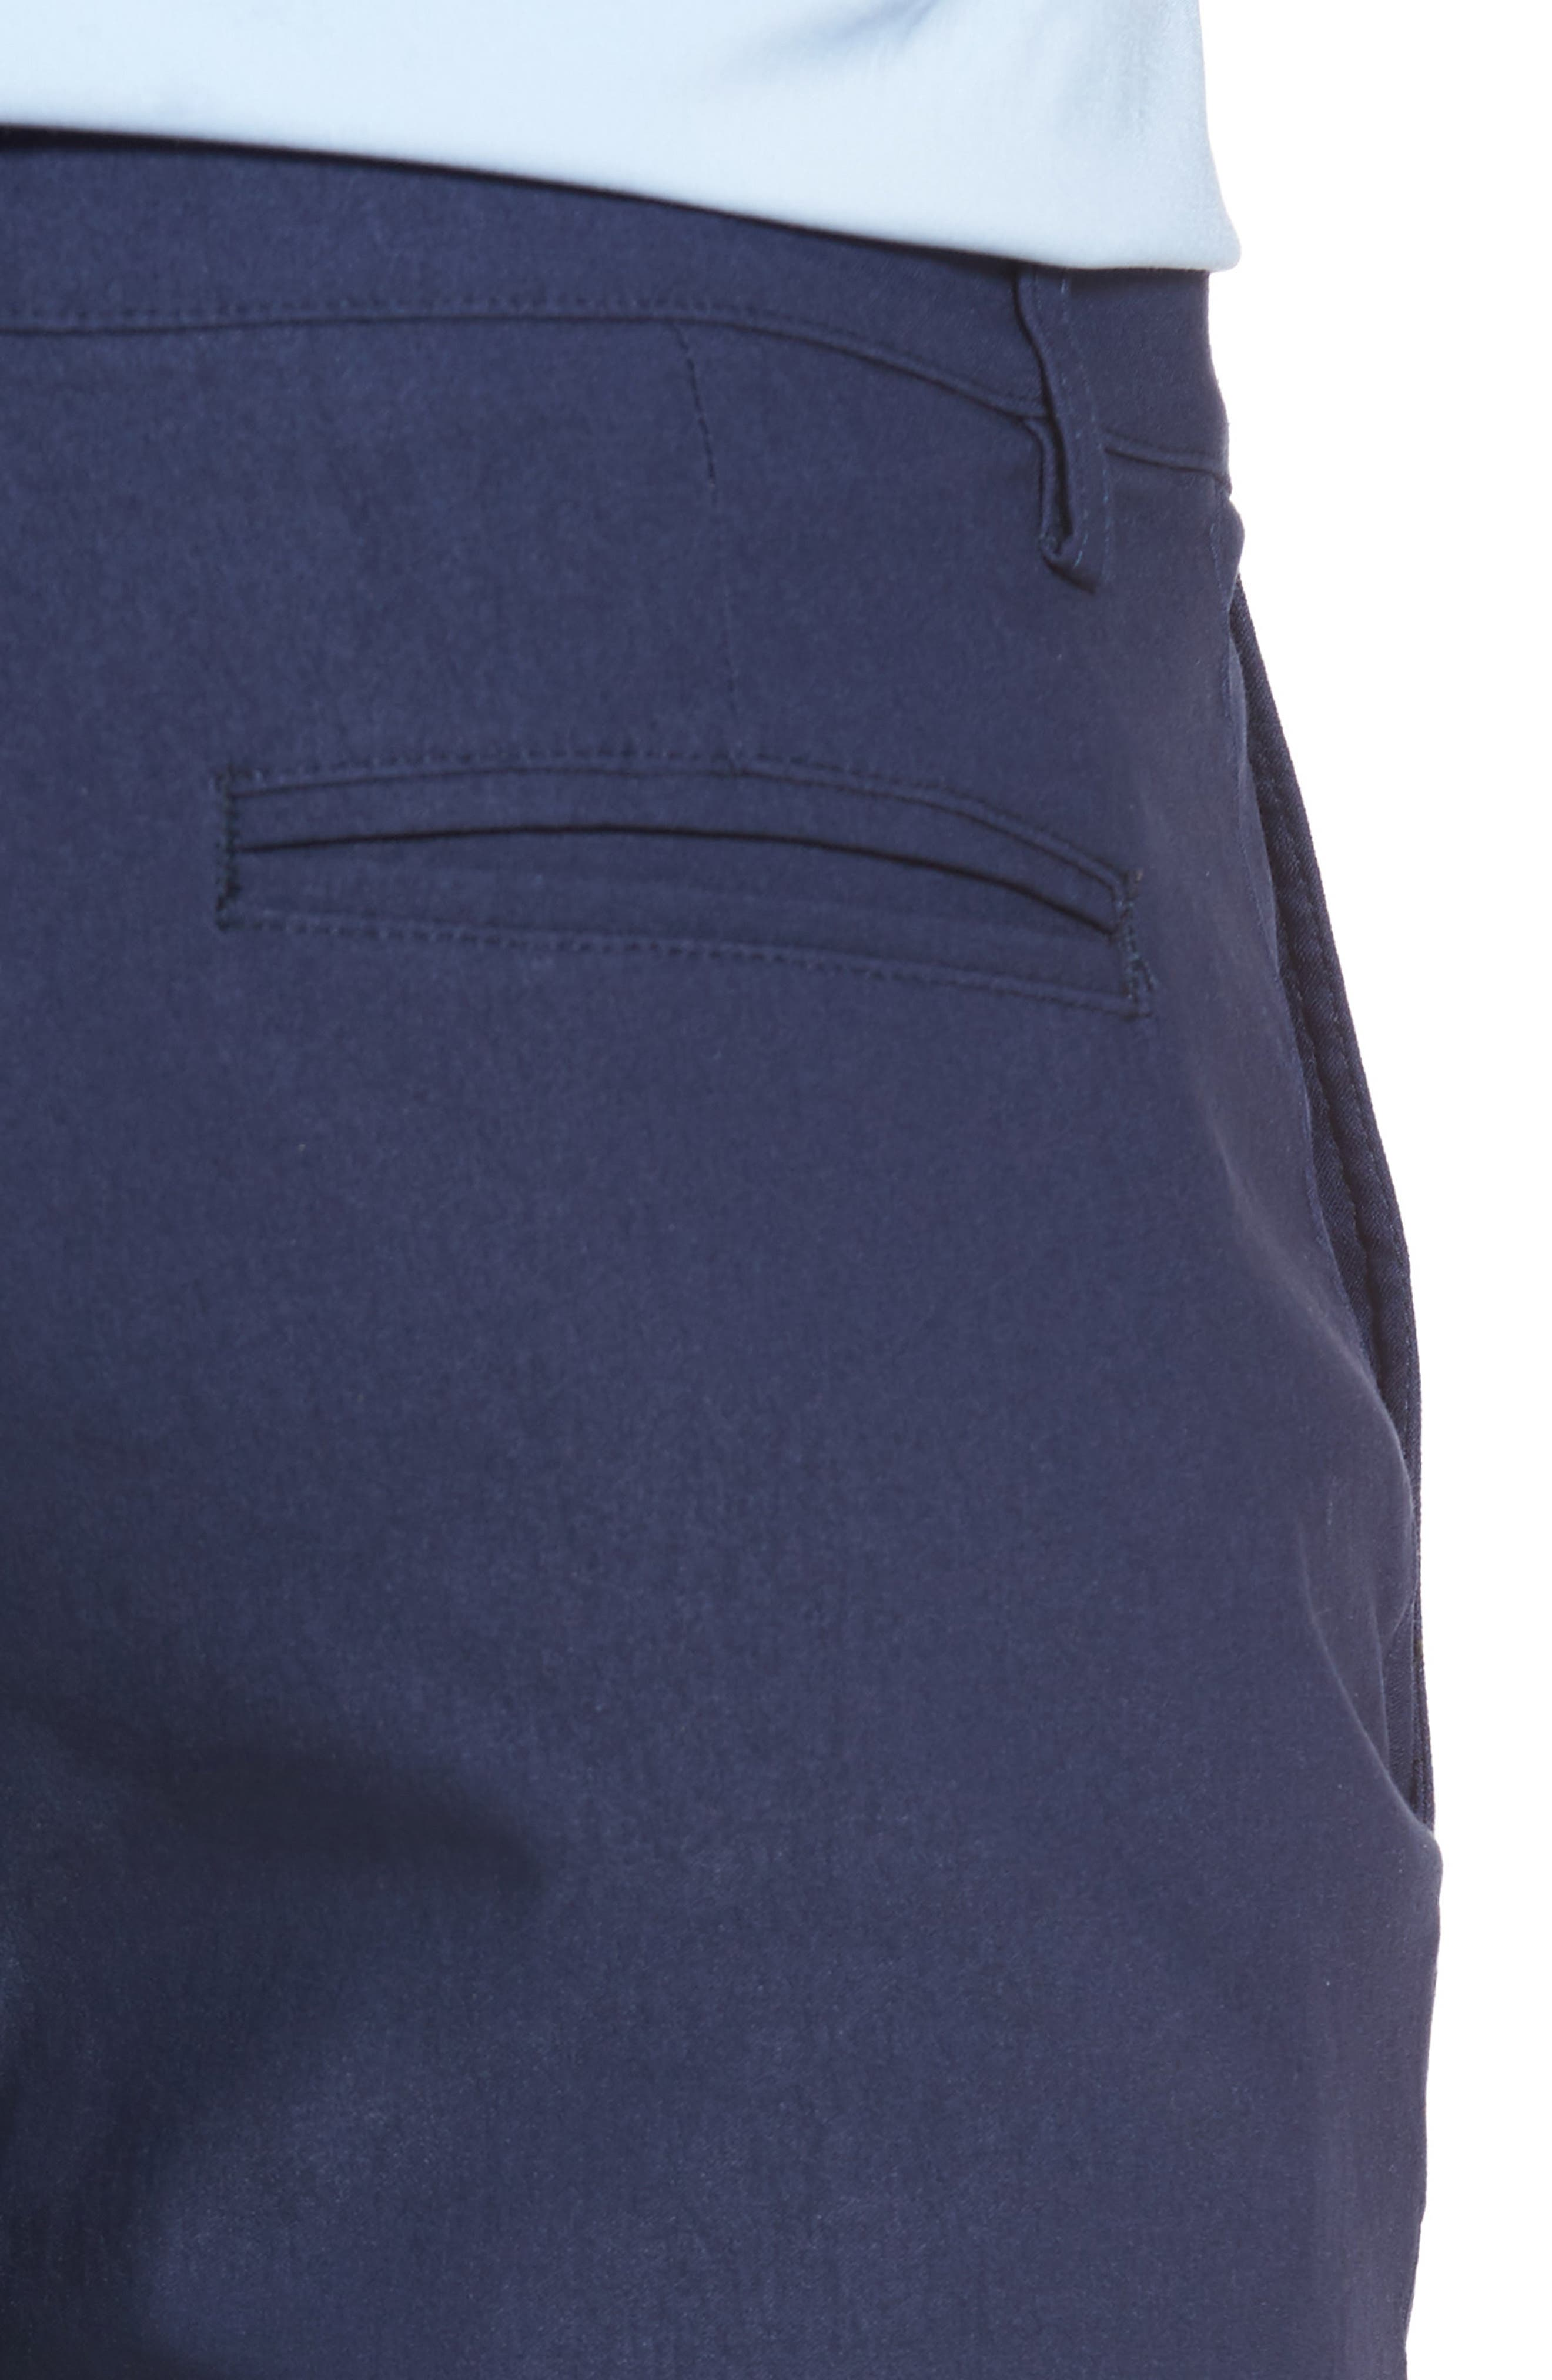 President Trim Fit Performance Chinos,                             Alternate thumbnail 4, color,                             400